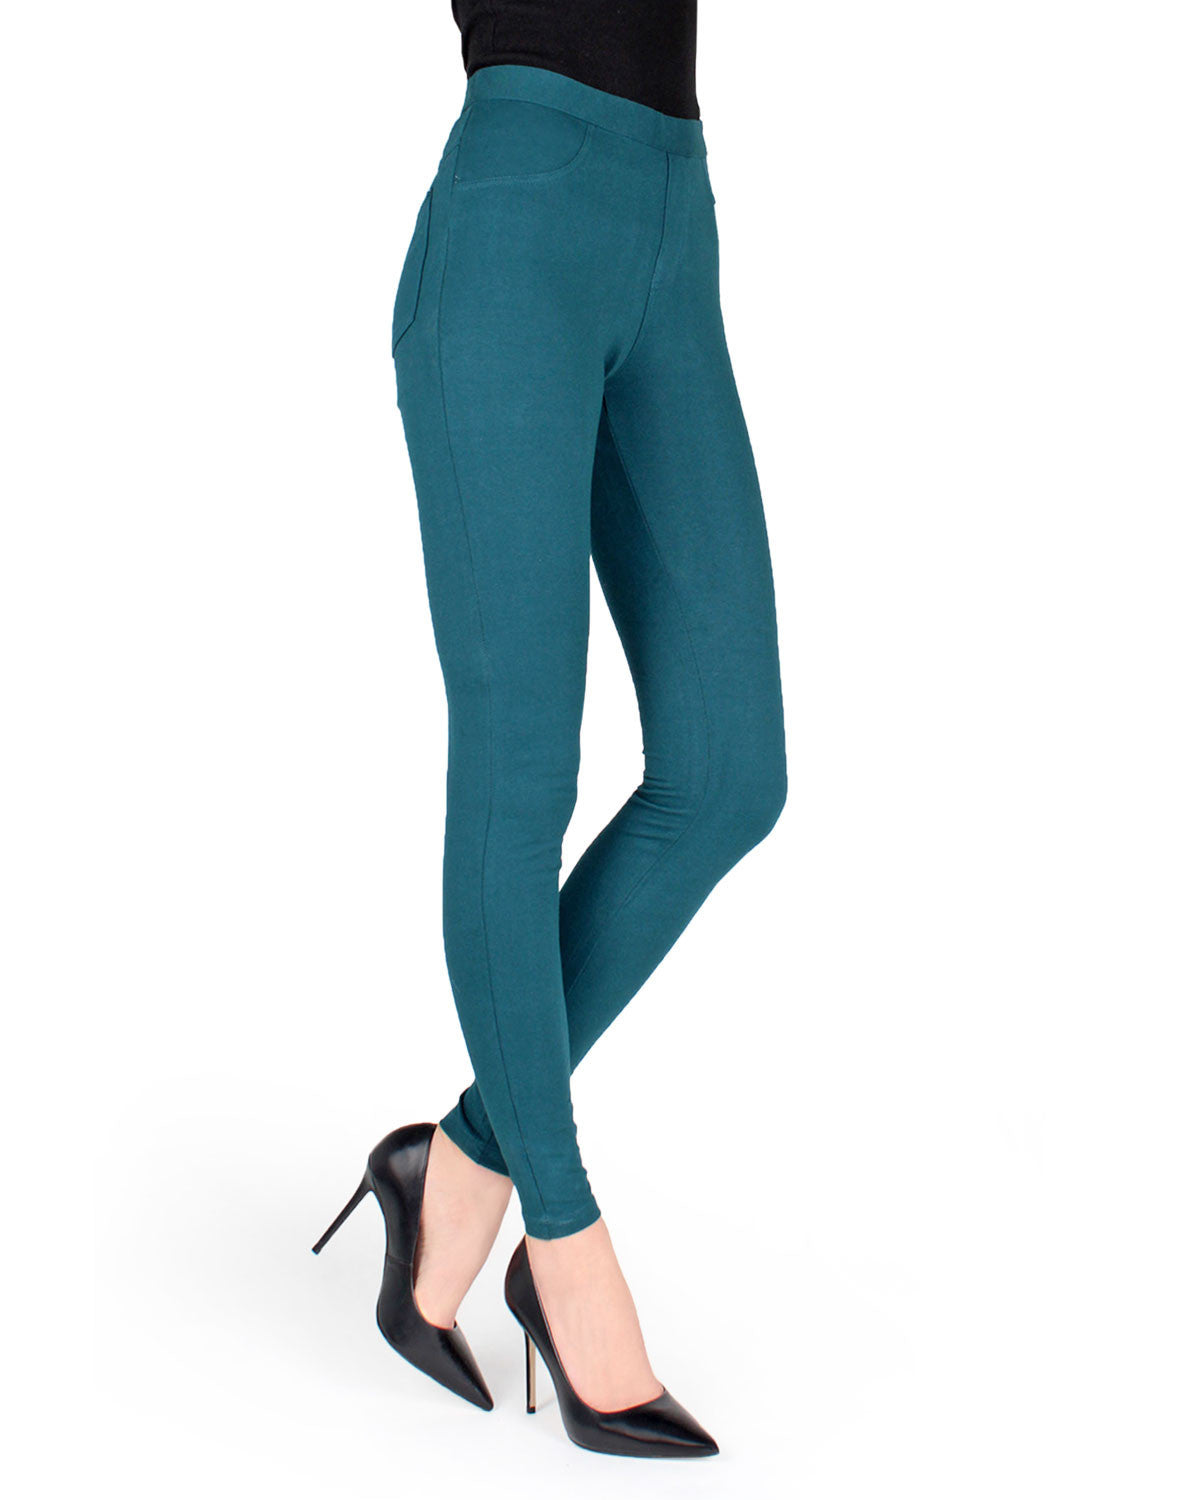 Soft Chic Leggings With Real Back Pockets Multi Colors